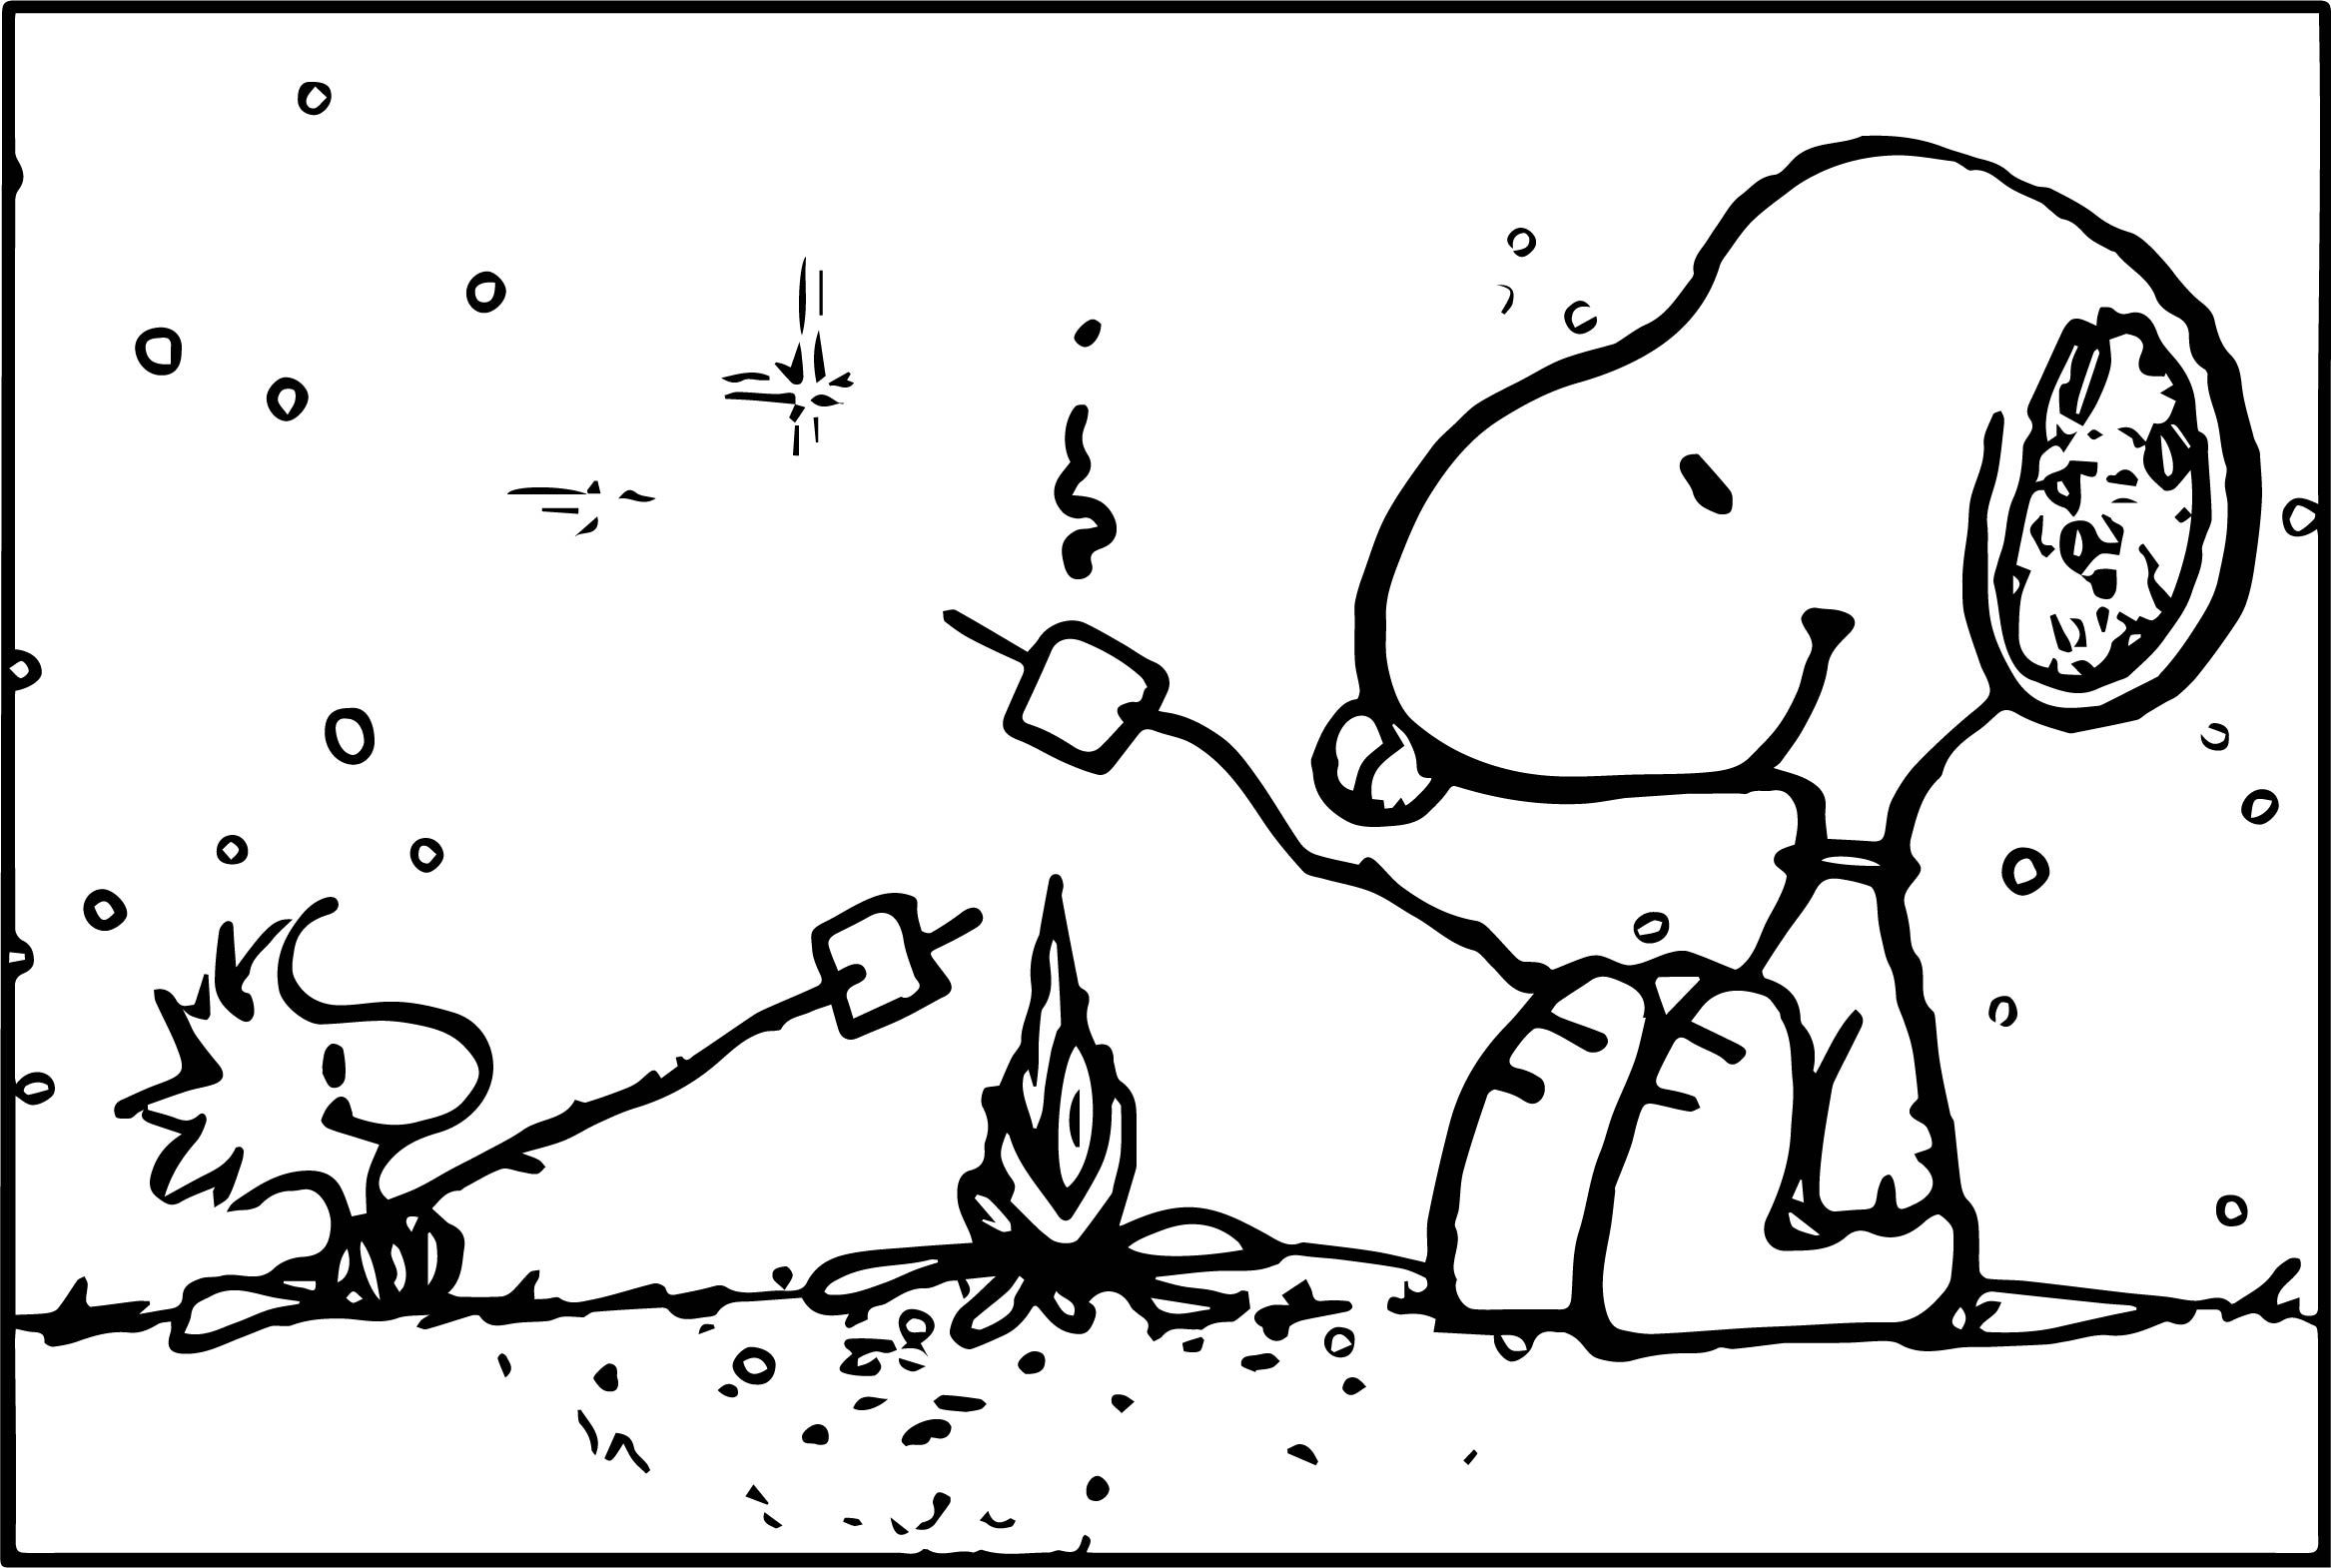 Awesome Snoopy Camping Coloring Page Snoopy Coloring Pages Camping Coloring Pages Christmas Coloring Pages